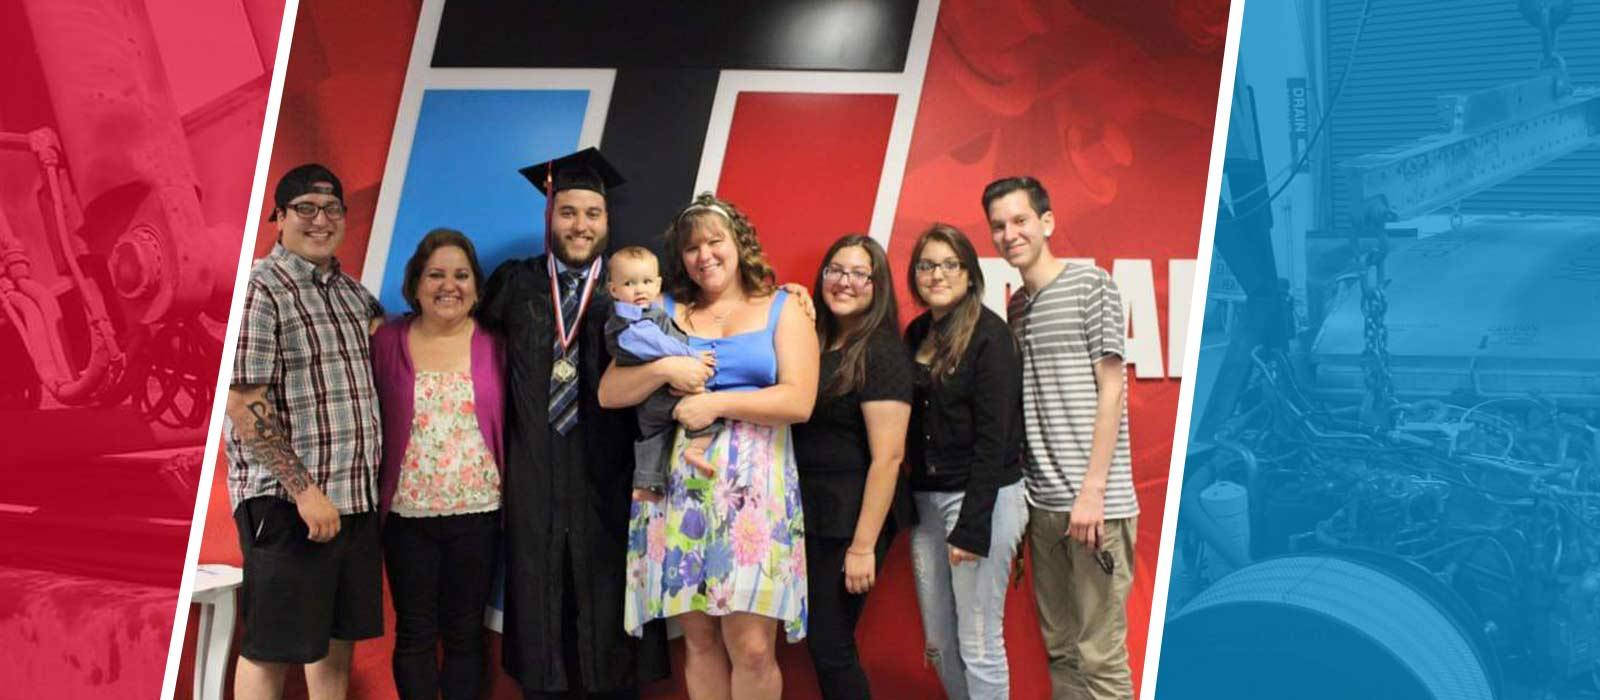 UTI graduate Corey Hedge automotive program diesel program Ford FACT program with his family at graduation